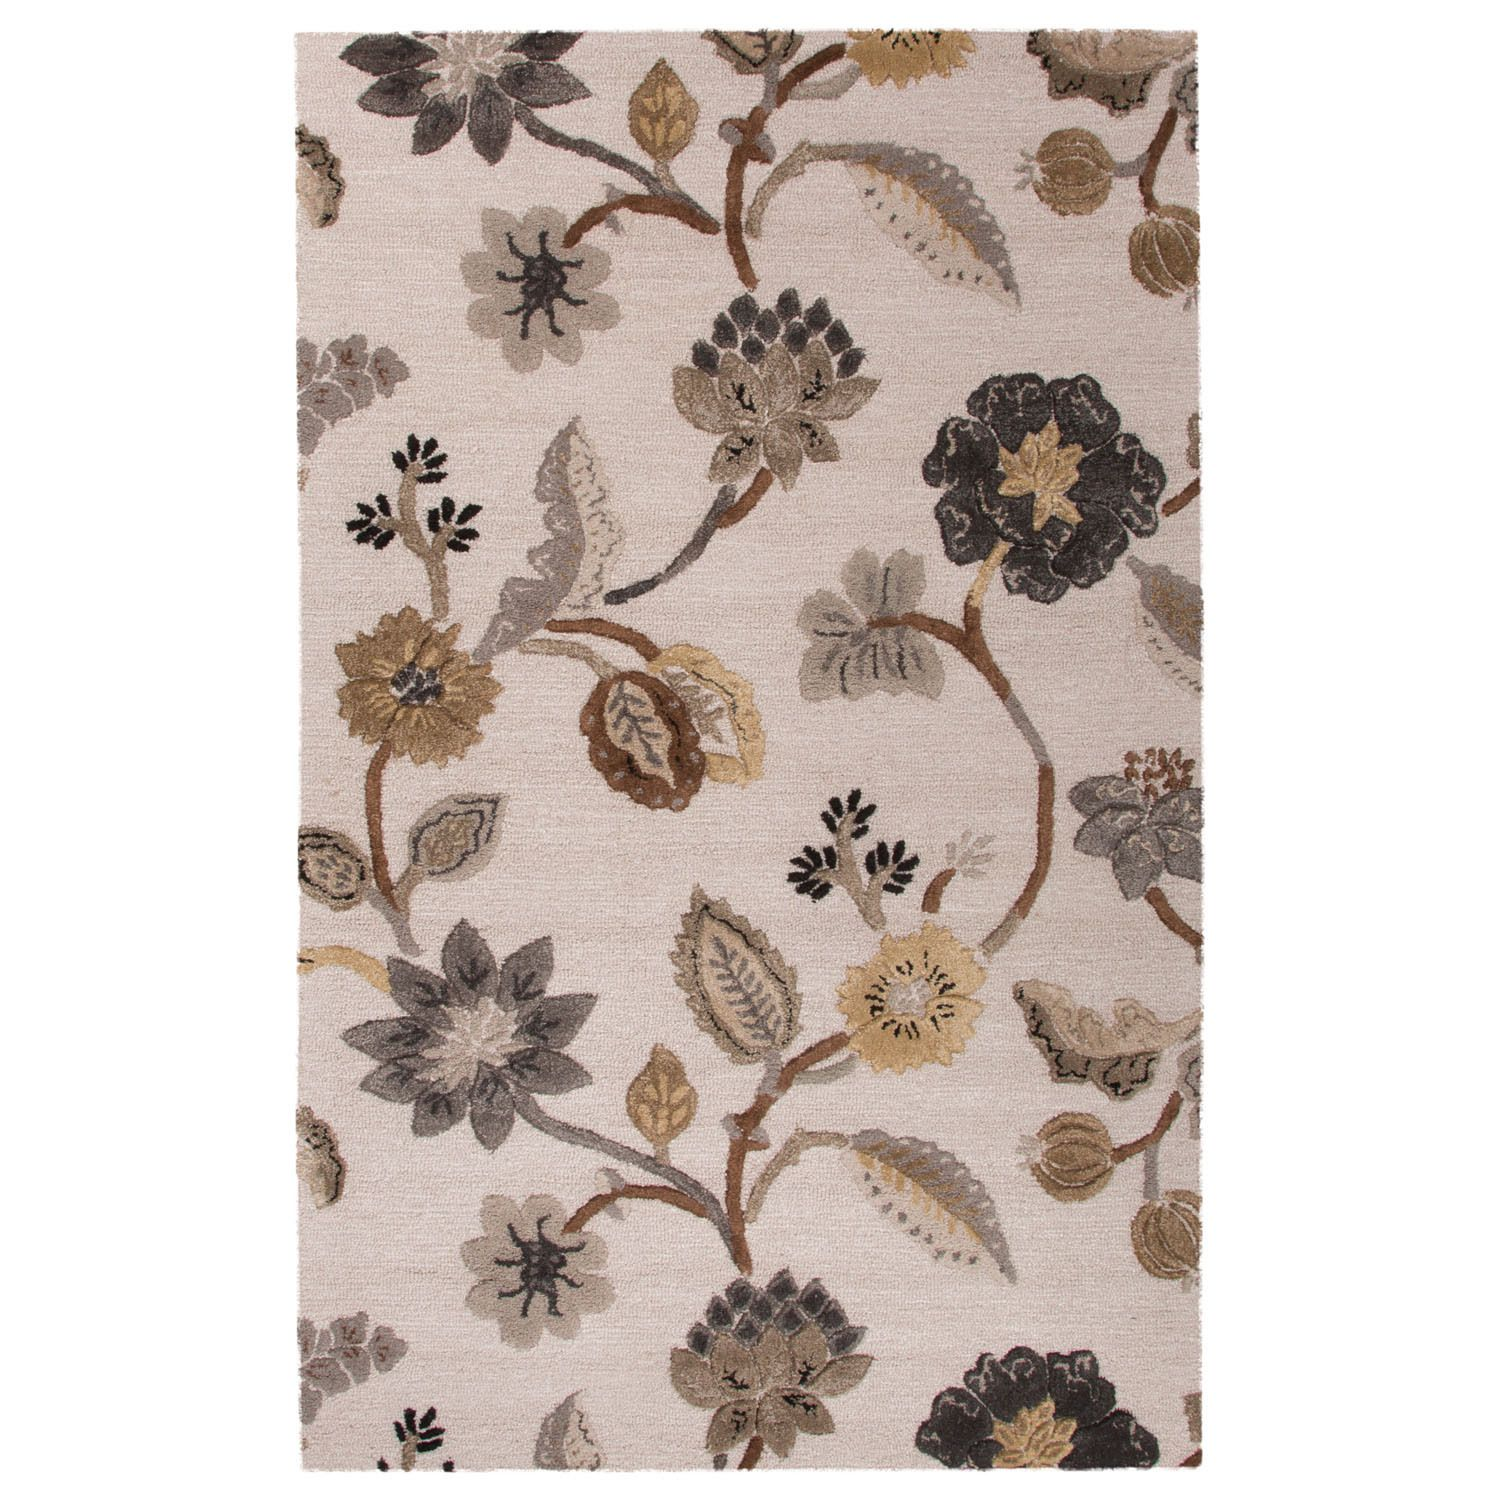 Jaipur Contemporary & Leaves Pattern Ivory/Gray Wool and Art Silk Area Rug